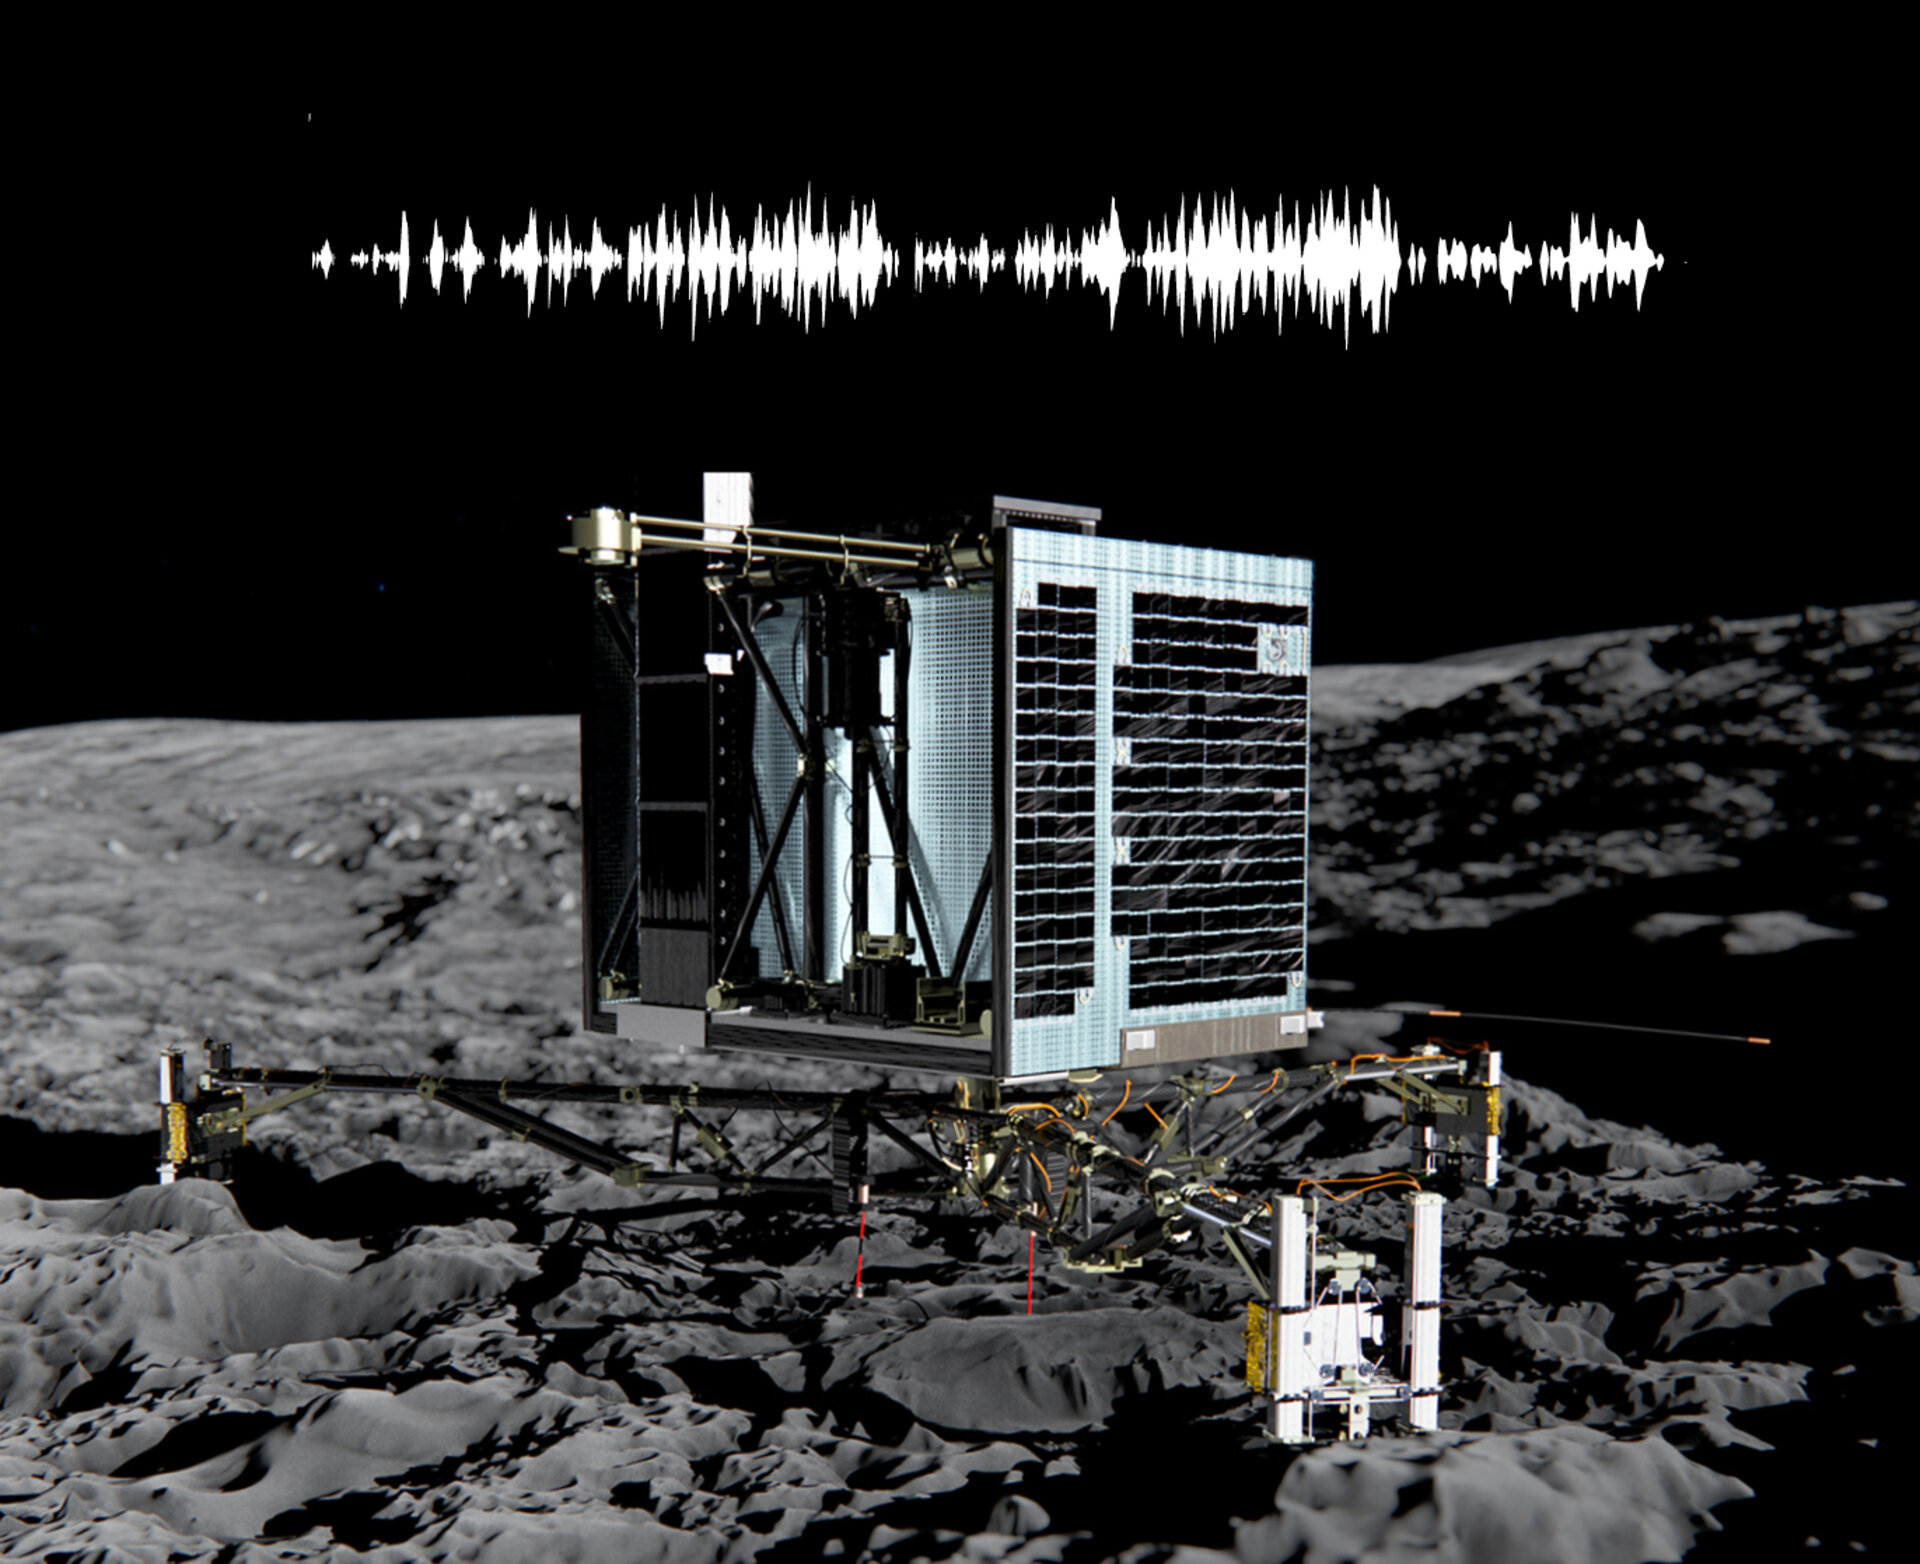 The sound of Philae hammering